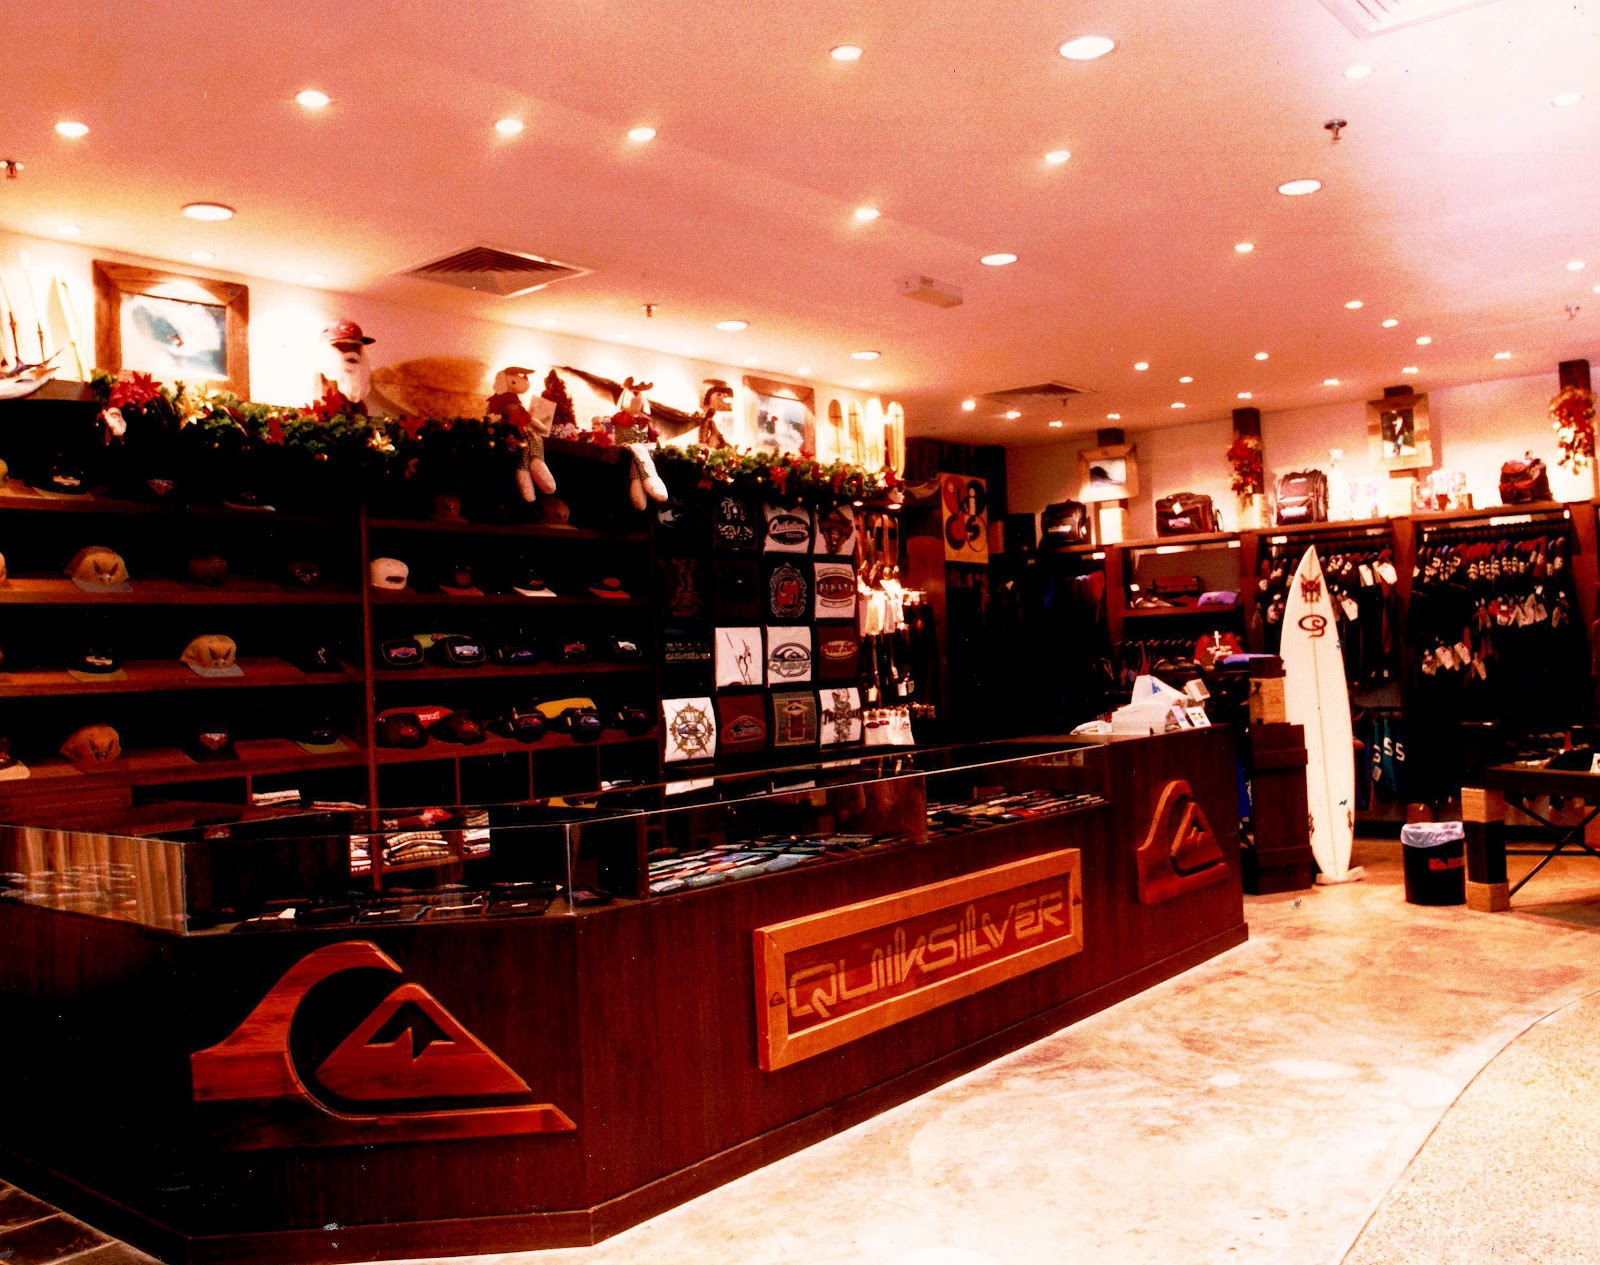 Global Brands Group is to sell a substantial part of its North American branded business to Differential Brands Group for US$ billion. Quiksilver has opened a new generation store in Jakarta. The new store, a partnership between Quiksilver Indonesia and retail partner PT Gagan, is located in.